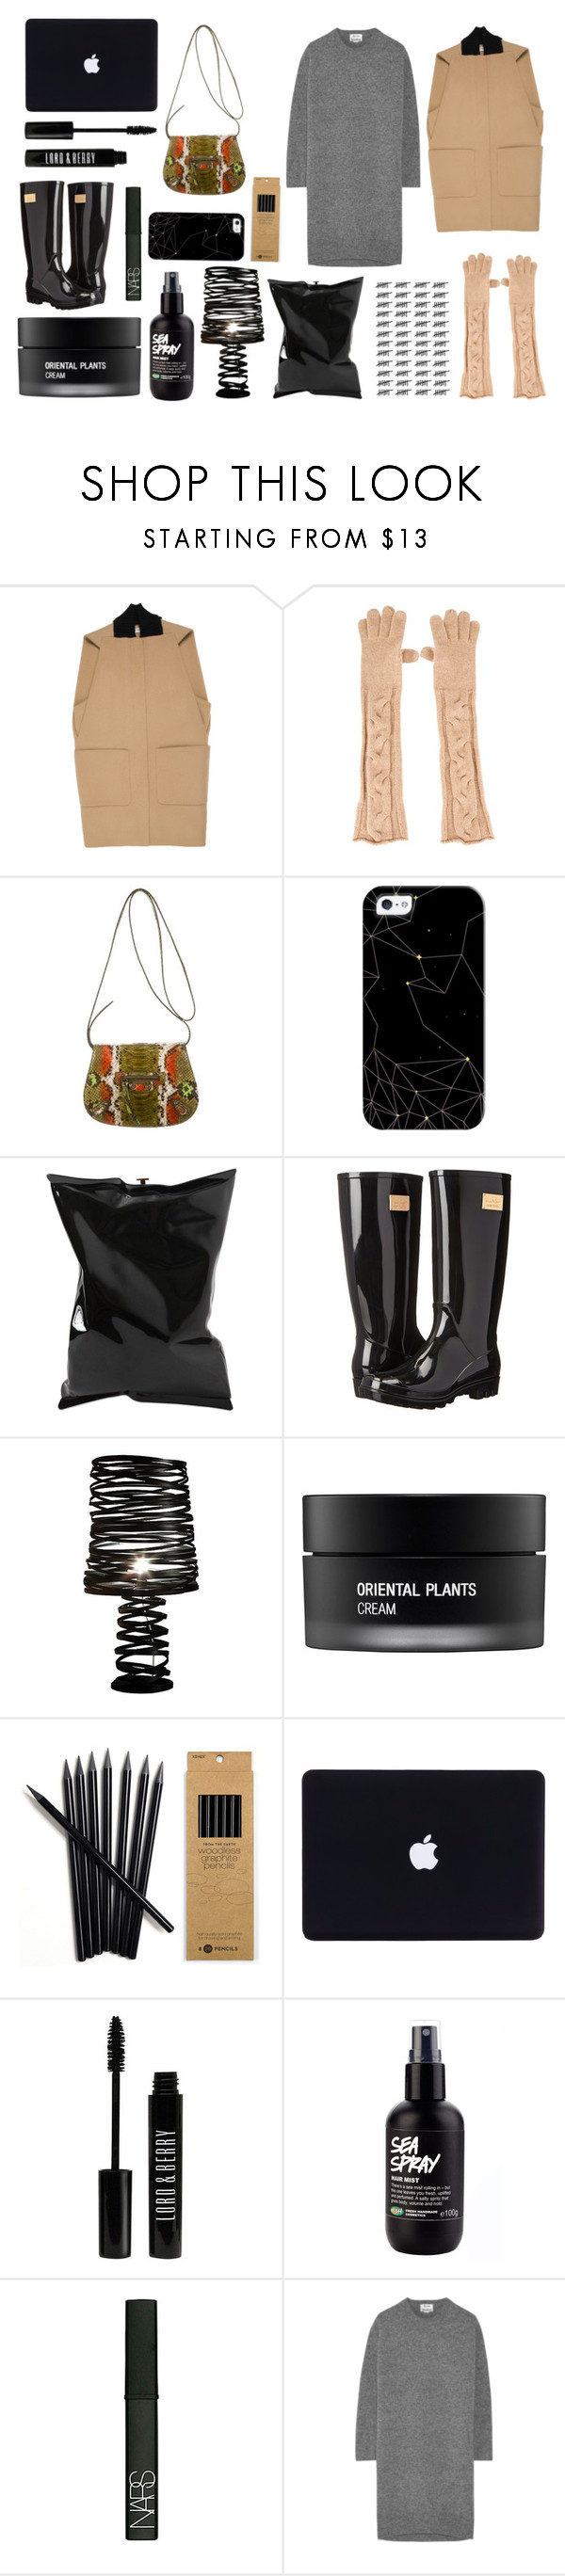 """Fall Style With The RealReal: Contest Entry"" by modernandsmash ❤ liked on Polyvore featuring Balenciaga, Loro Piana, Casetify, Anya Hindmarch, Nicole Miller, Koh Gen Do, Lord & Berry, NARS Cosmetics and Acne Studios"